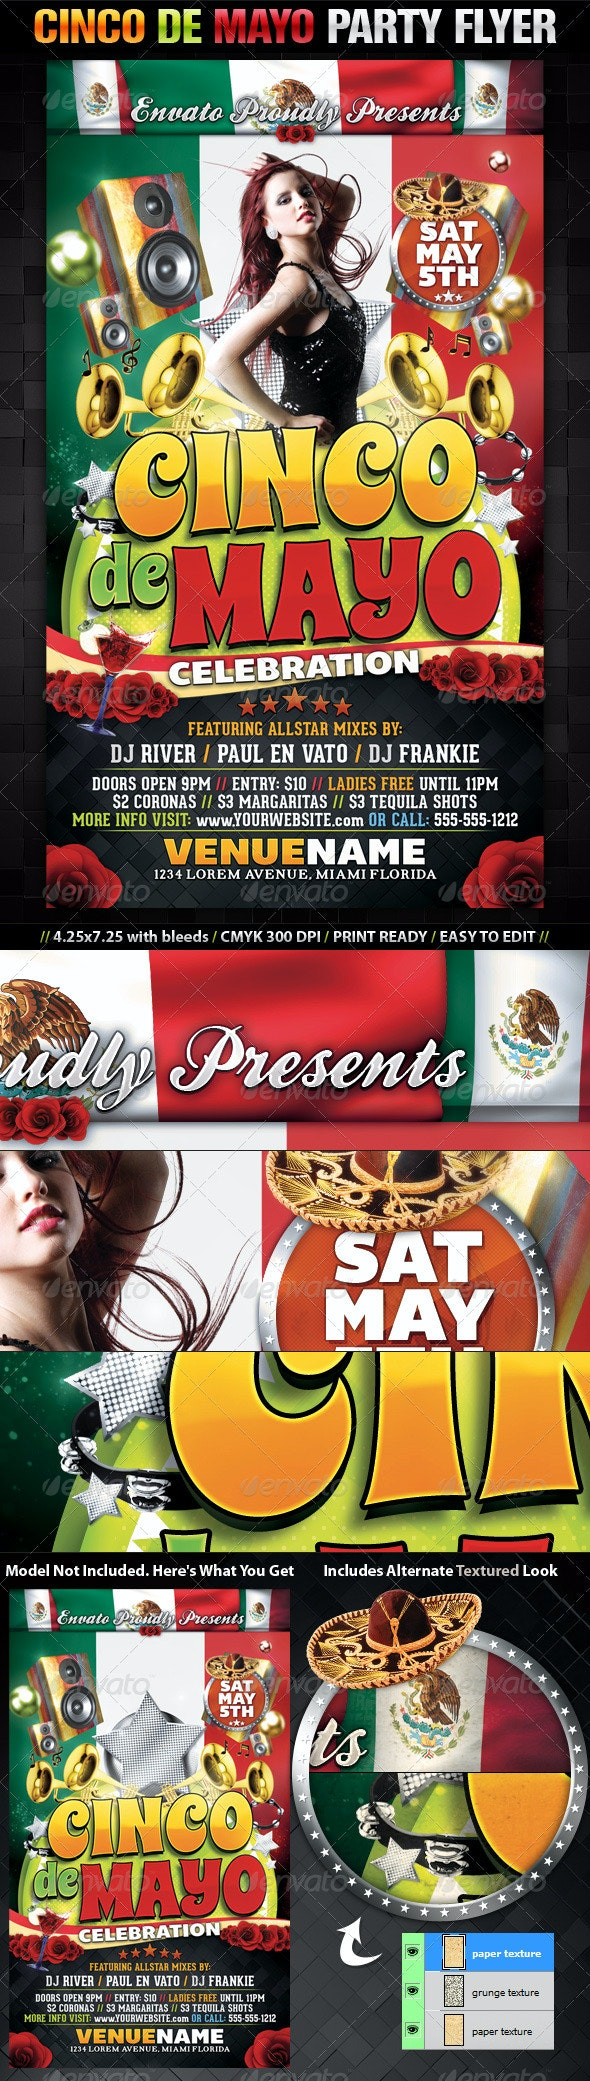 Cinco De Mayo Party Flyer Template - Clubs & Parties Events